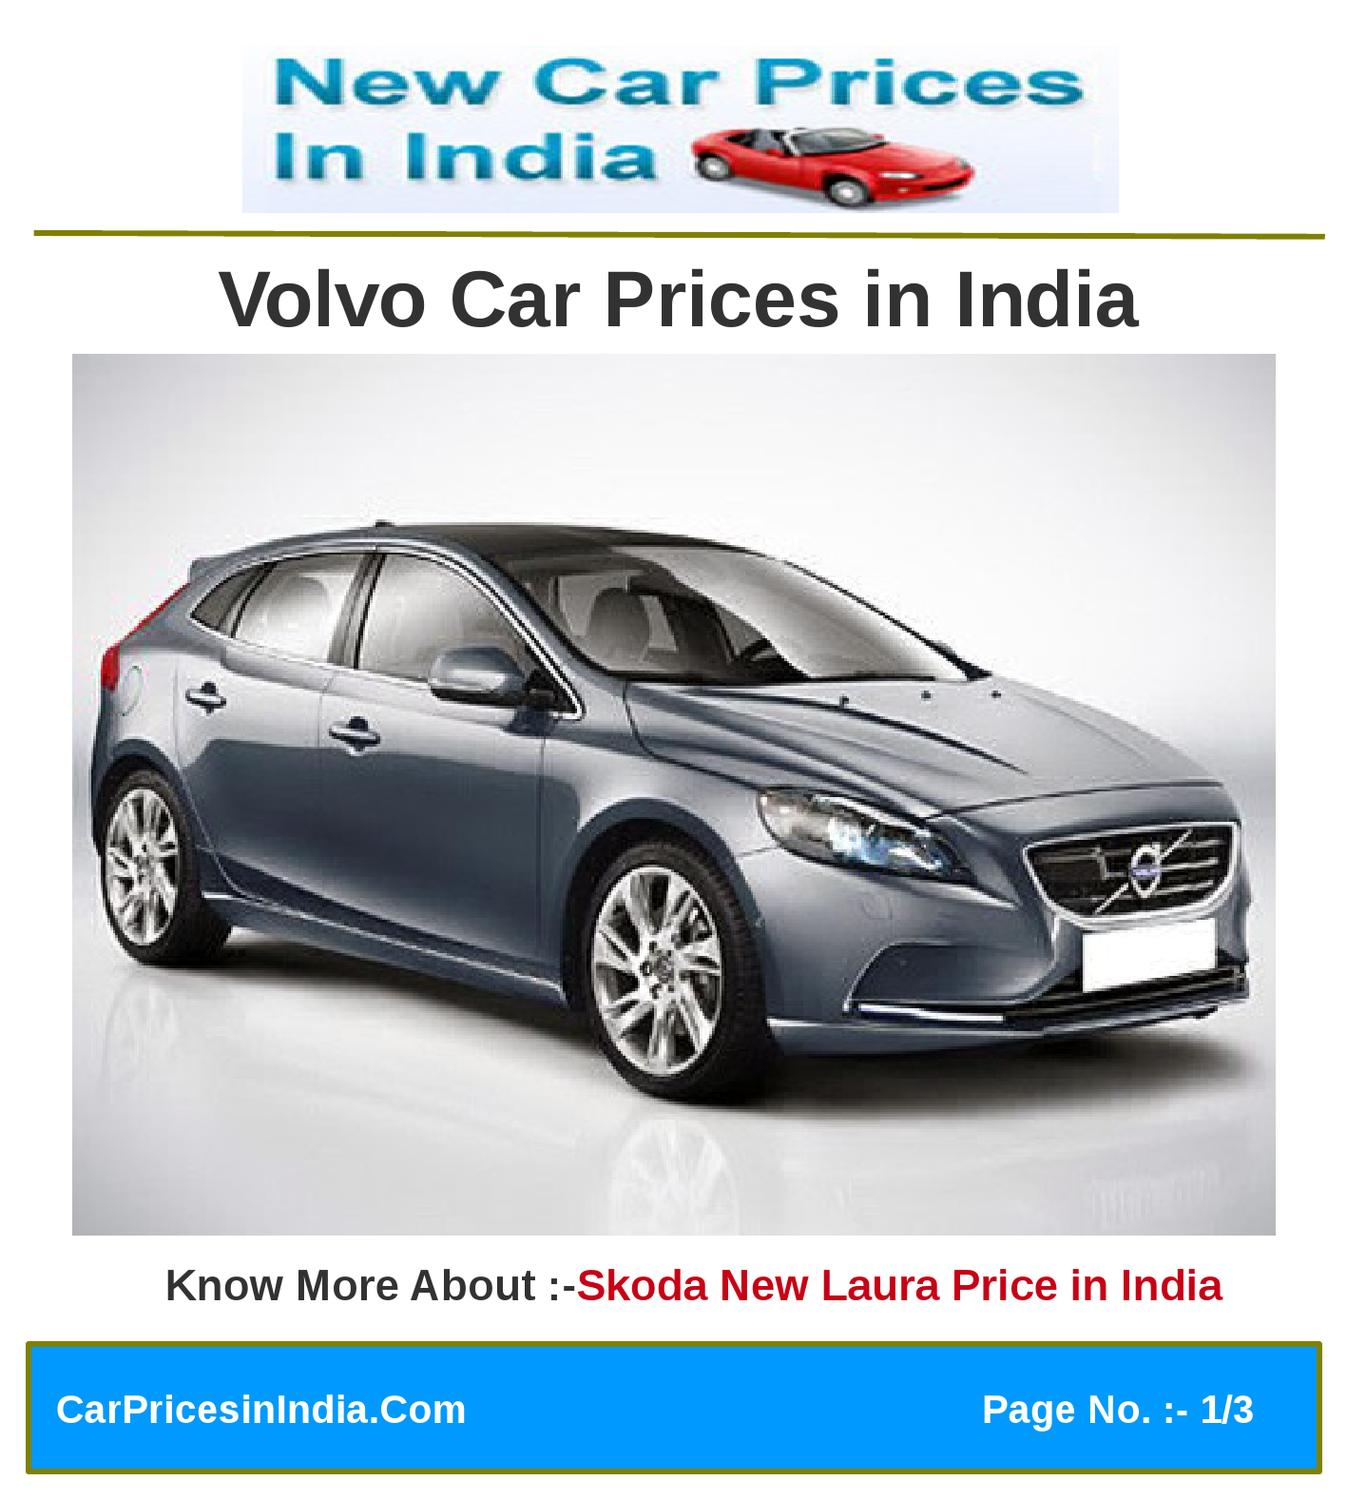 Volvo Pricing: Volvo Car Prices In India By Microsite Team